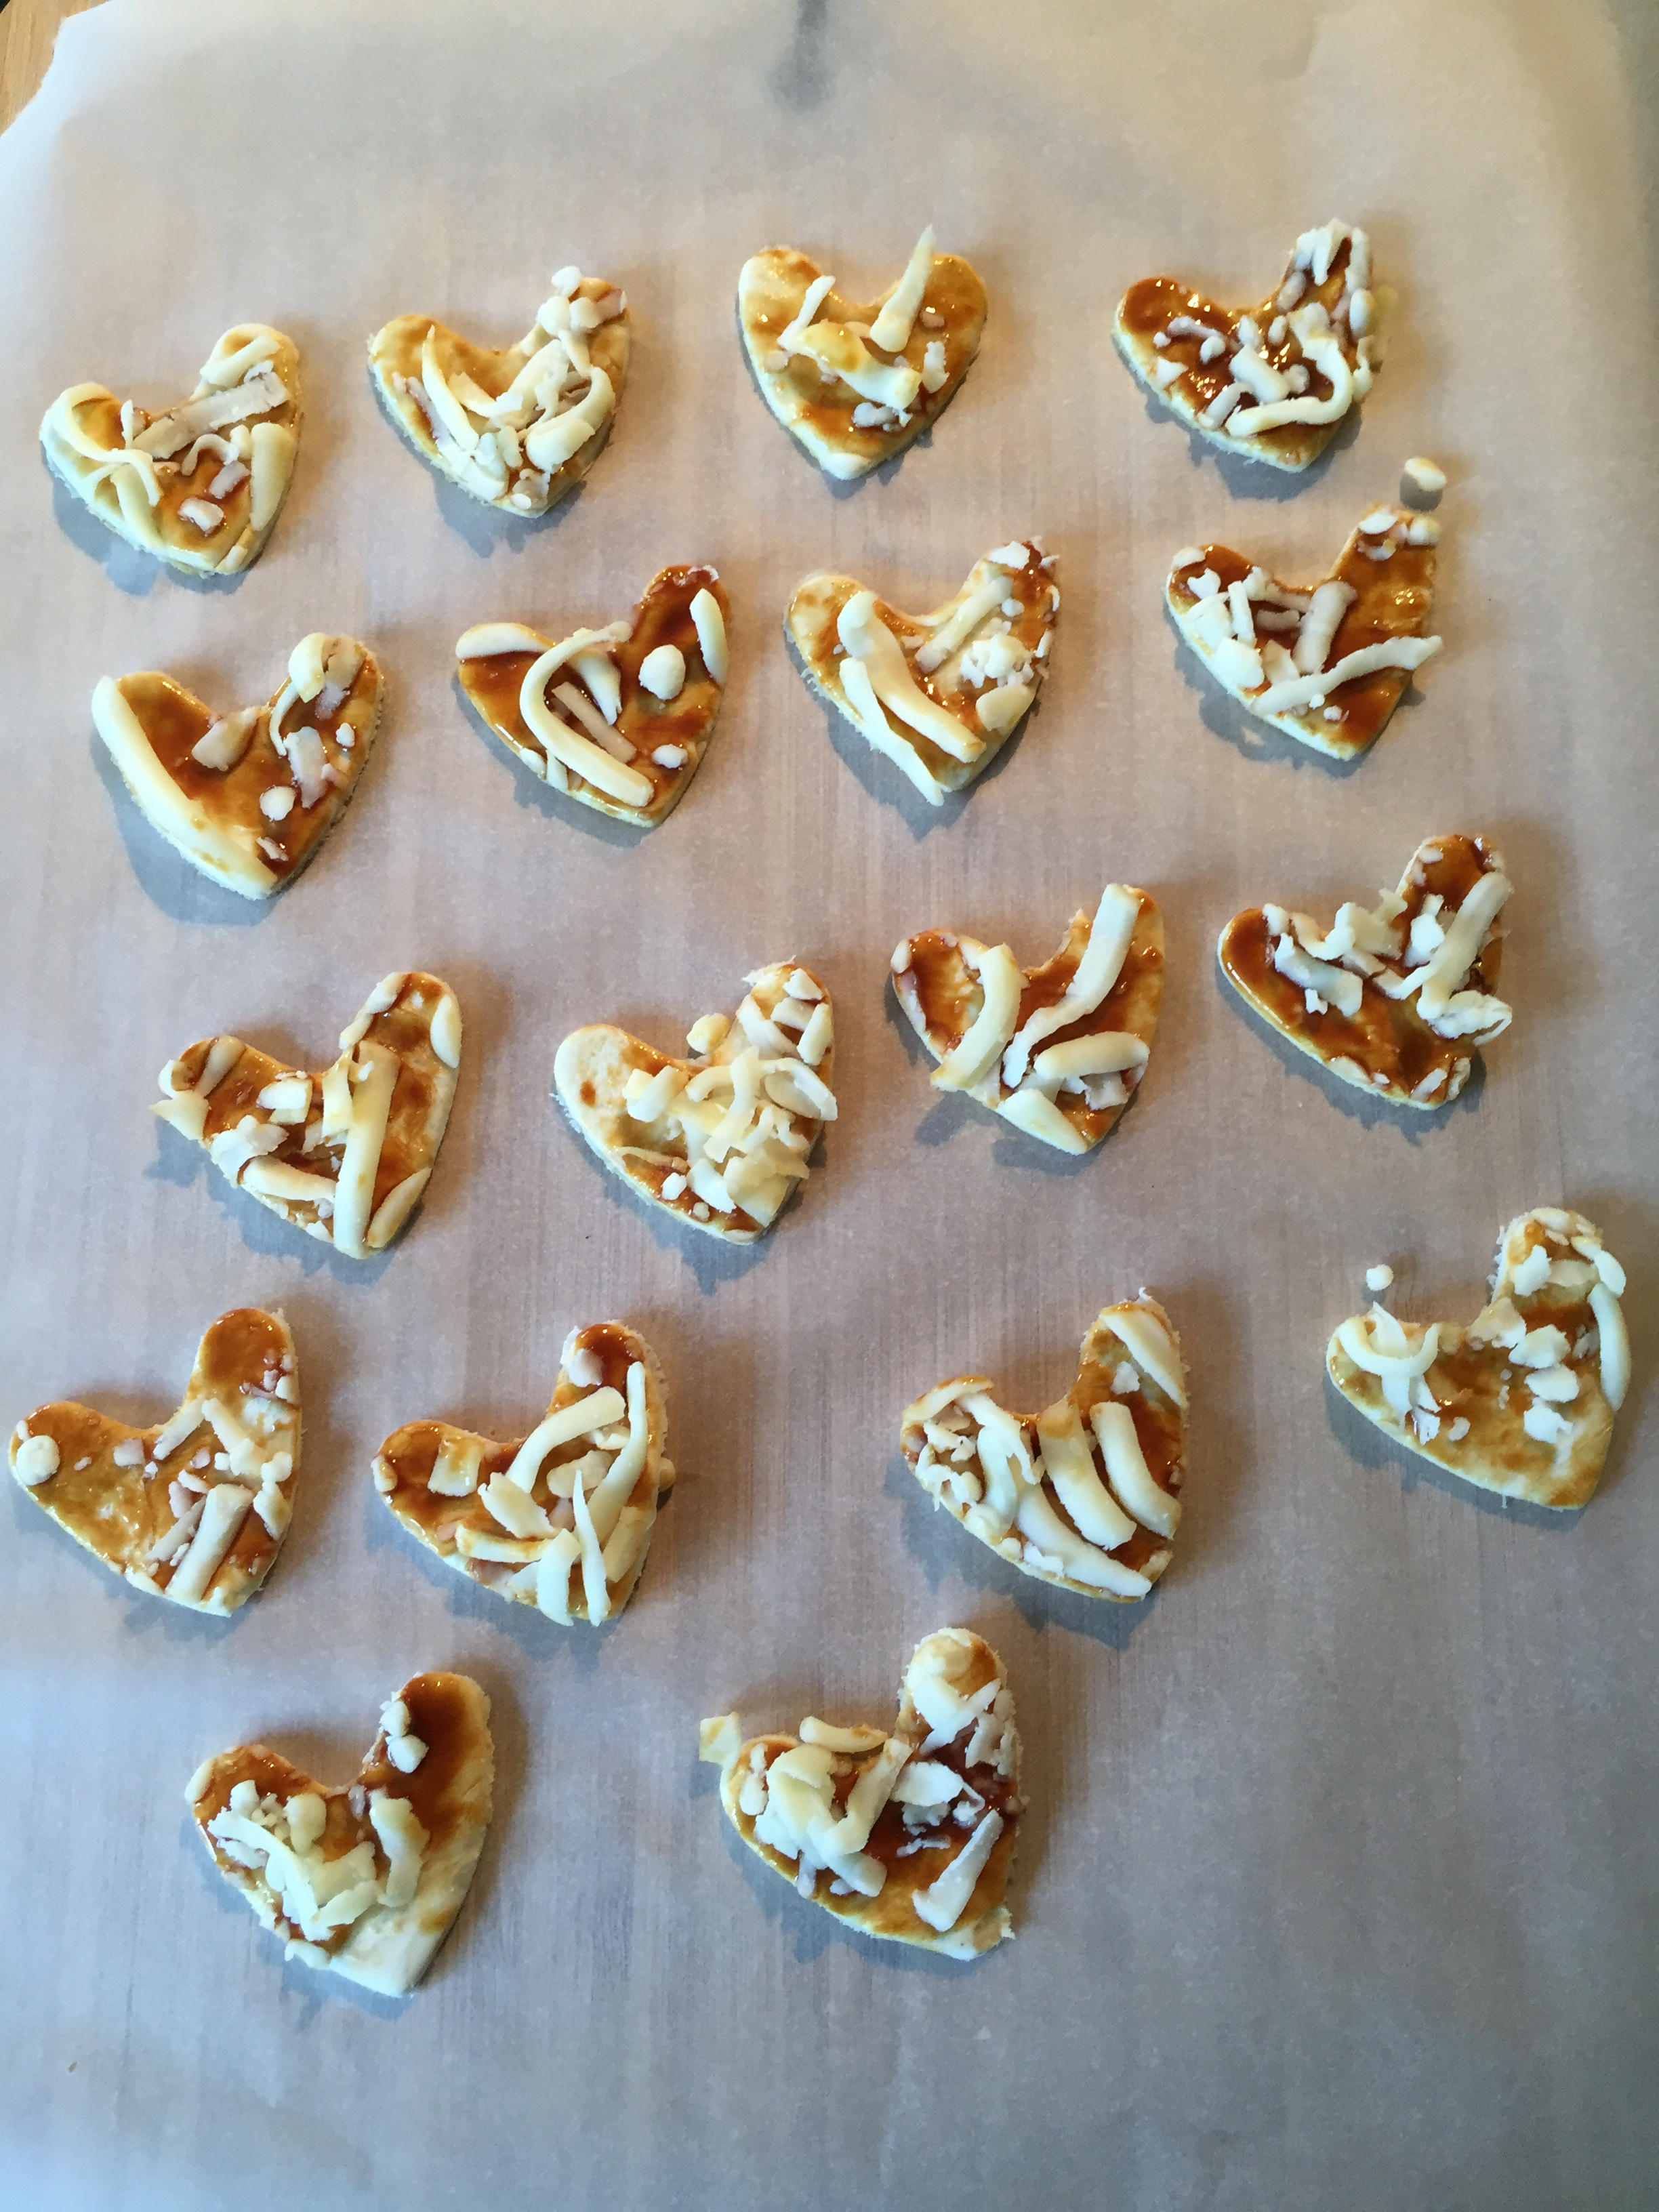 marmite puff pastry love bites for valentines twists biscuits scrolls pinwheels recipe cheese